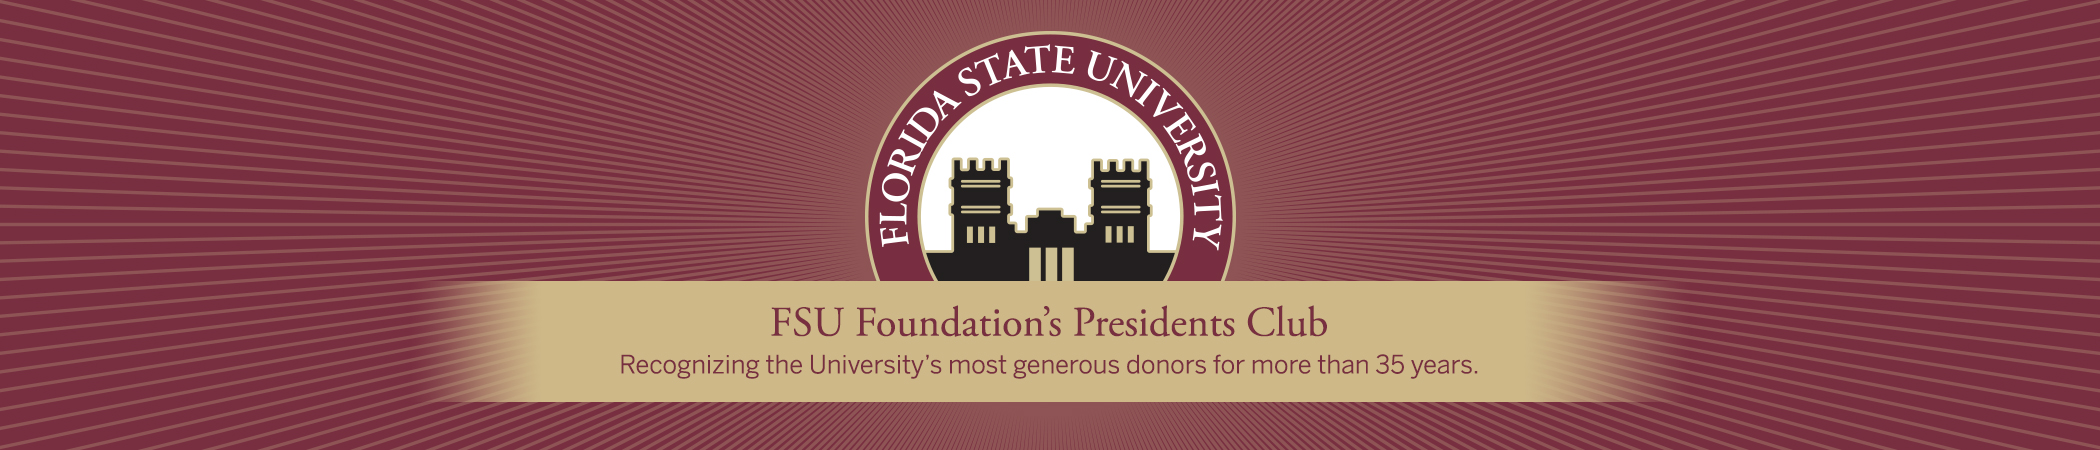 FSU Foundation's Presidents Club - Recognizing the University's most generous donors for more than 35 years.